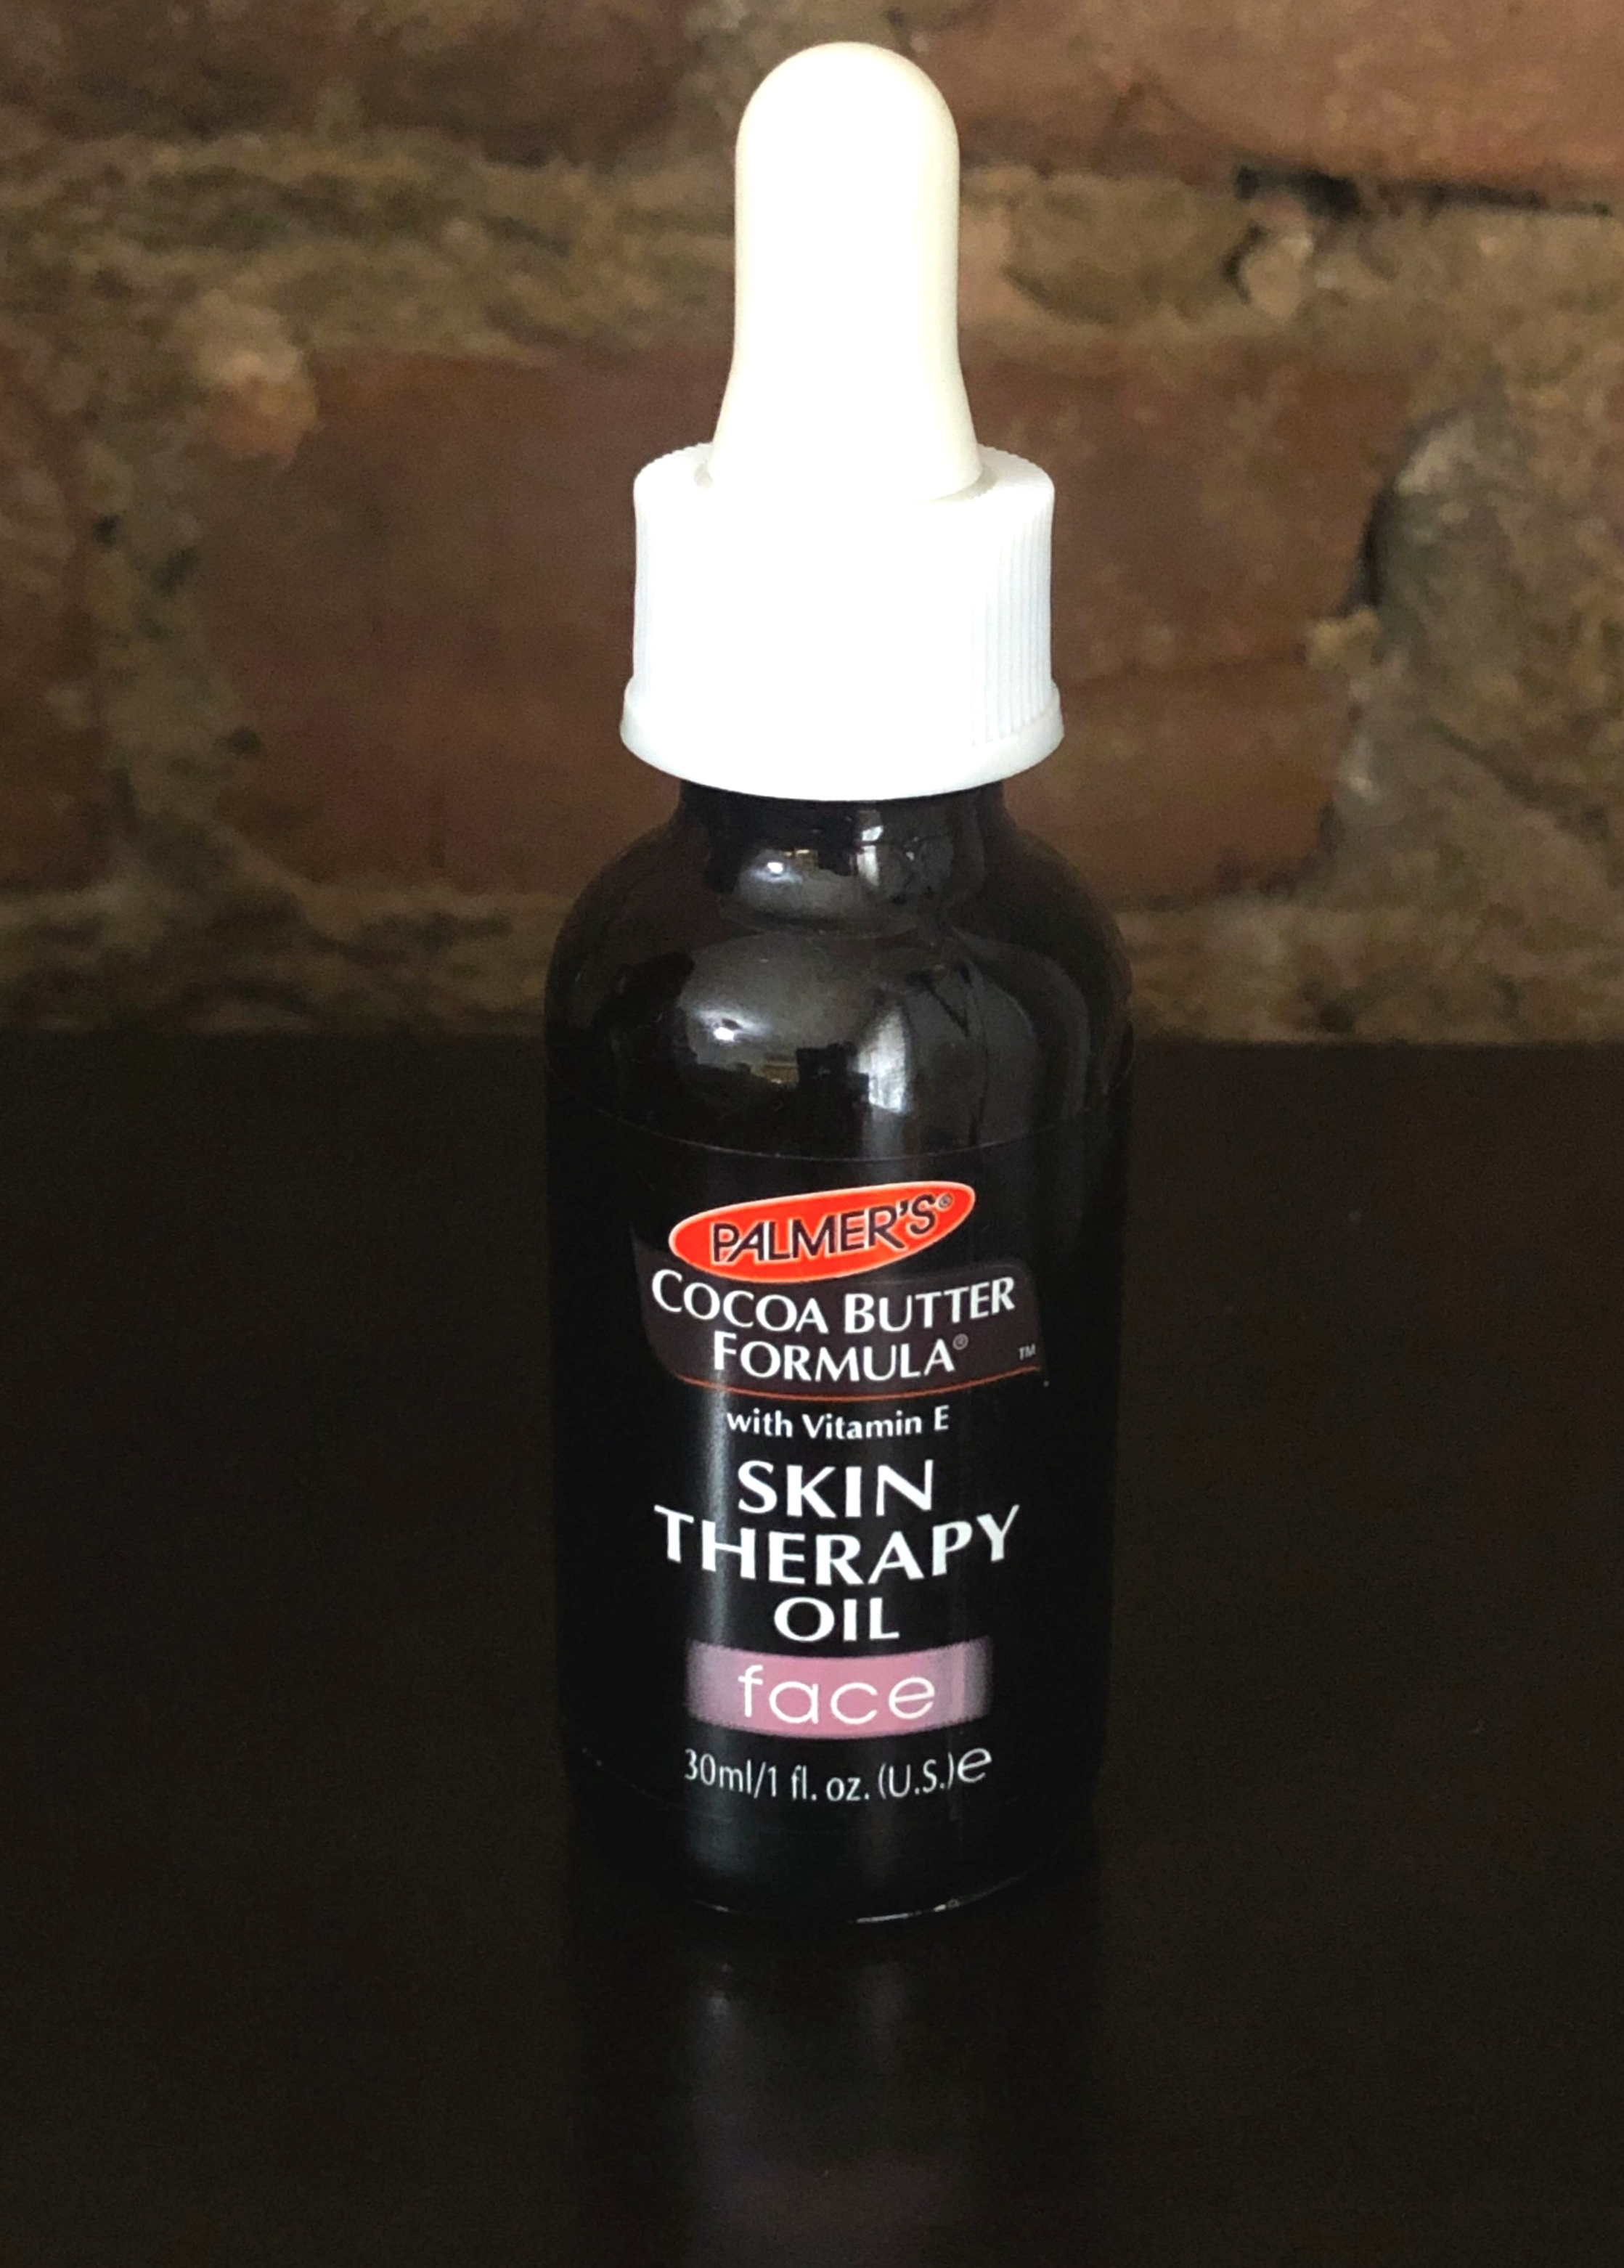 Palmer's Cocoa Butter Skin Therapy Face Oil $10.95